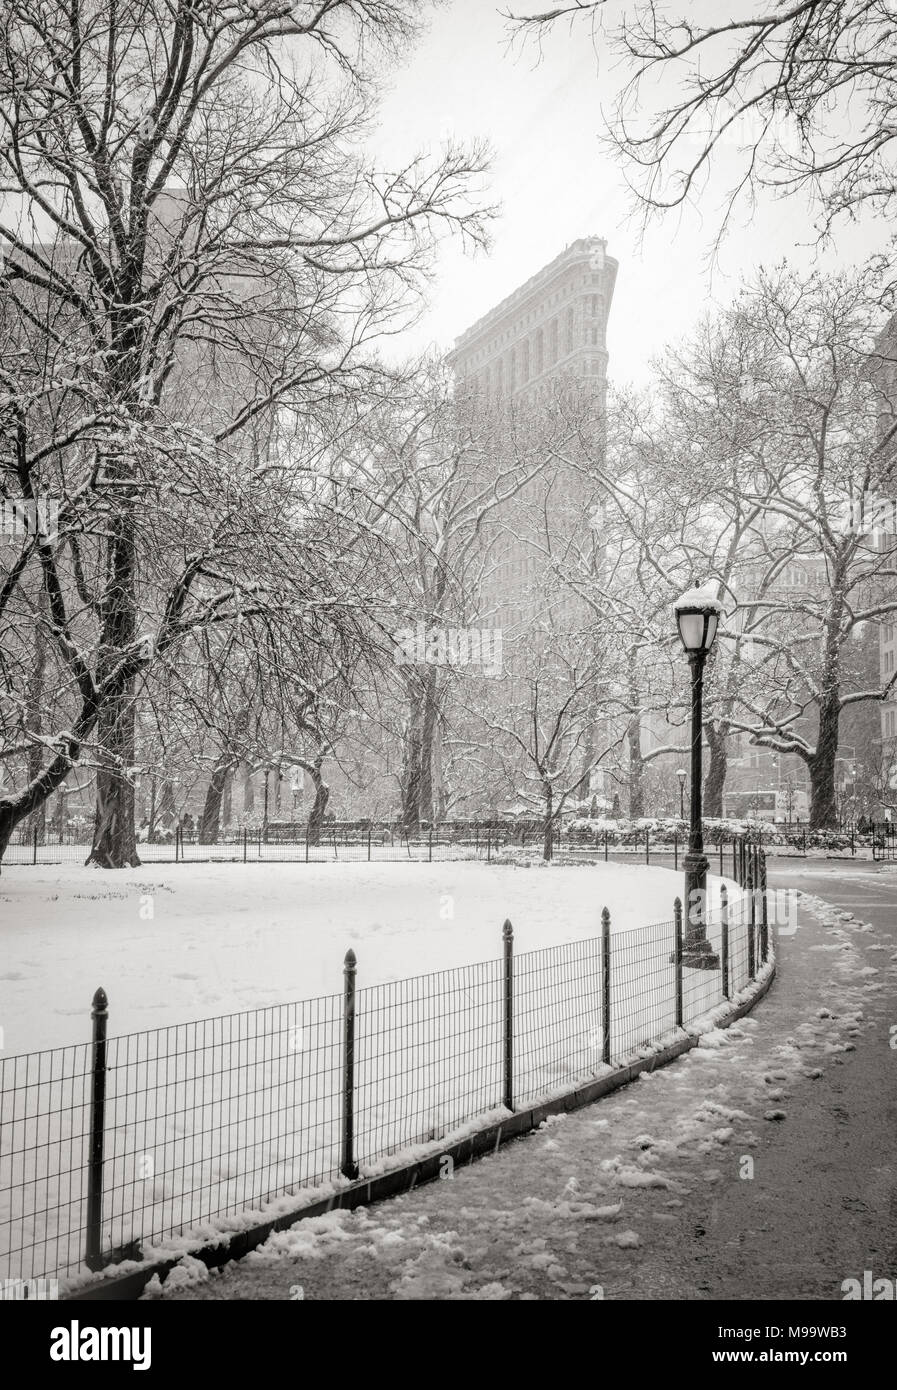 New York City, NY, USA - March 21, 2018: Flatiron Building from Madison Square Park with snowfall. (Black & White) Flatiron District, Manhattan Stock Photo